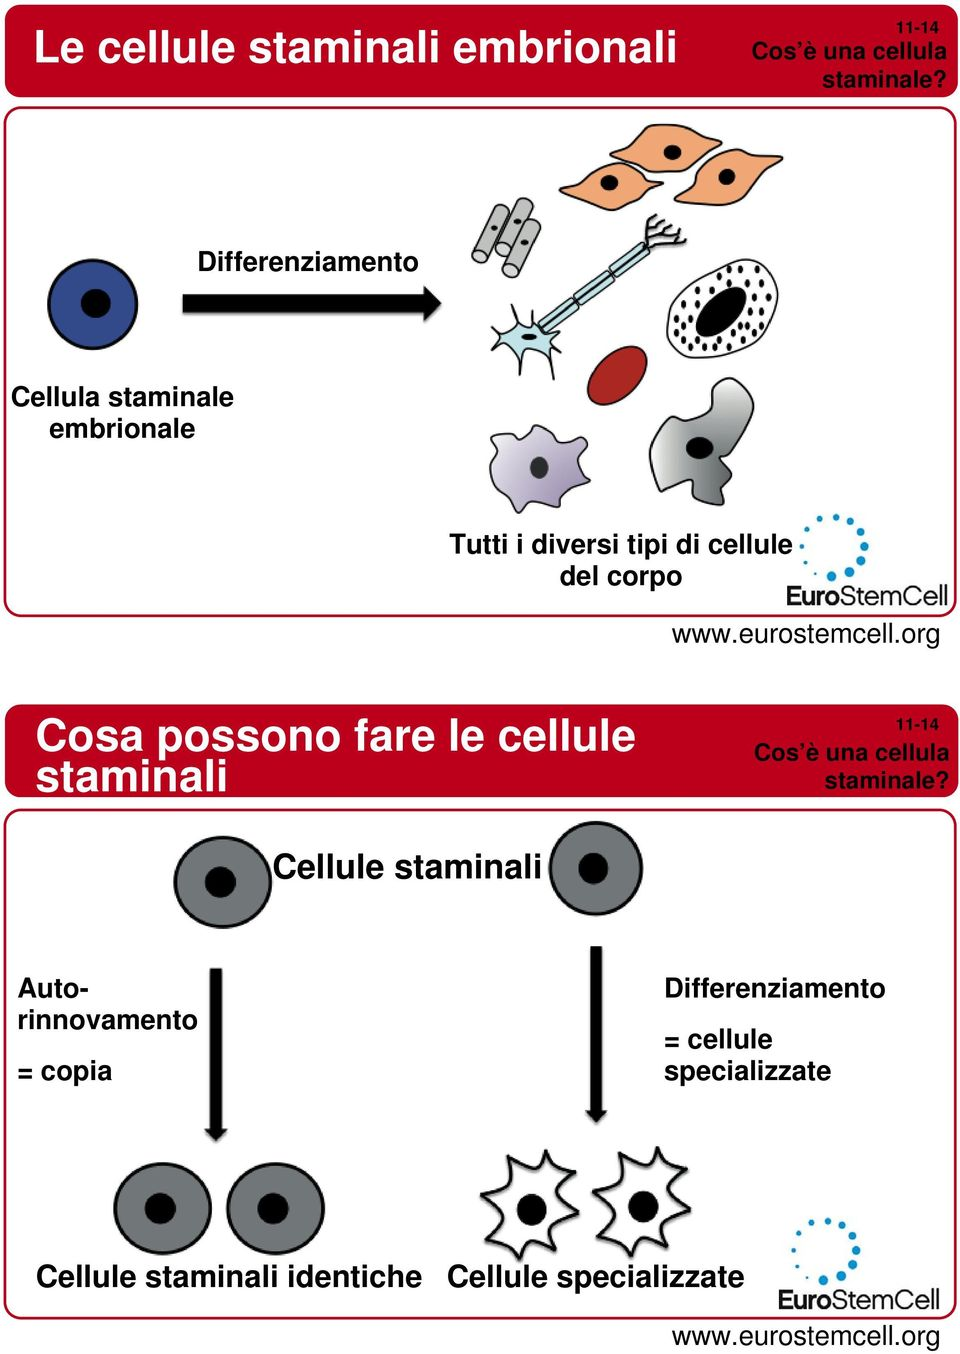 Cosa possono fare le cellule staminali Cos è una cellula staminale?